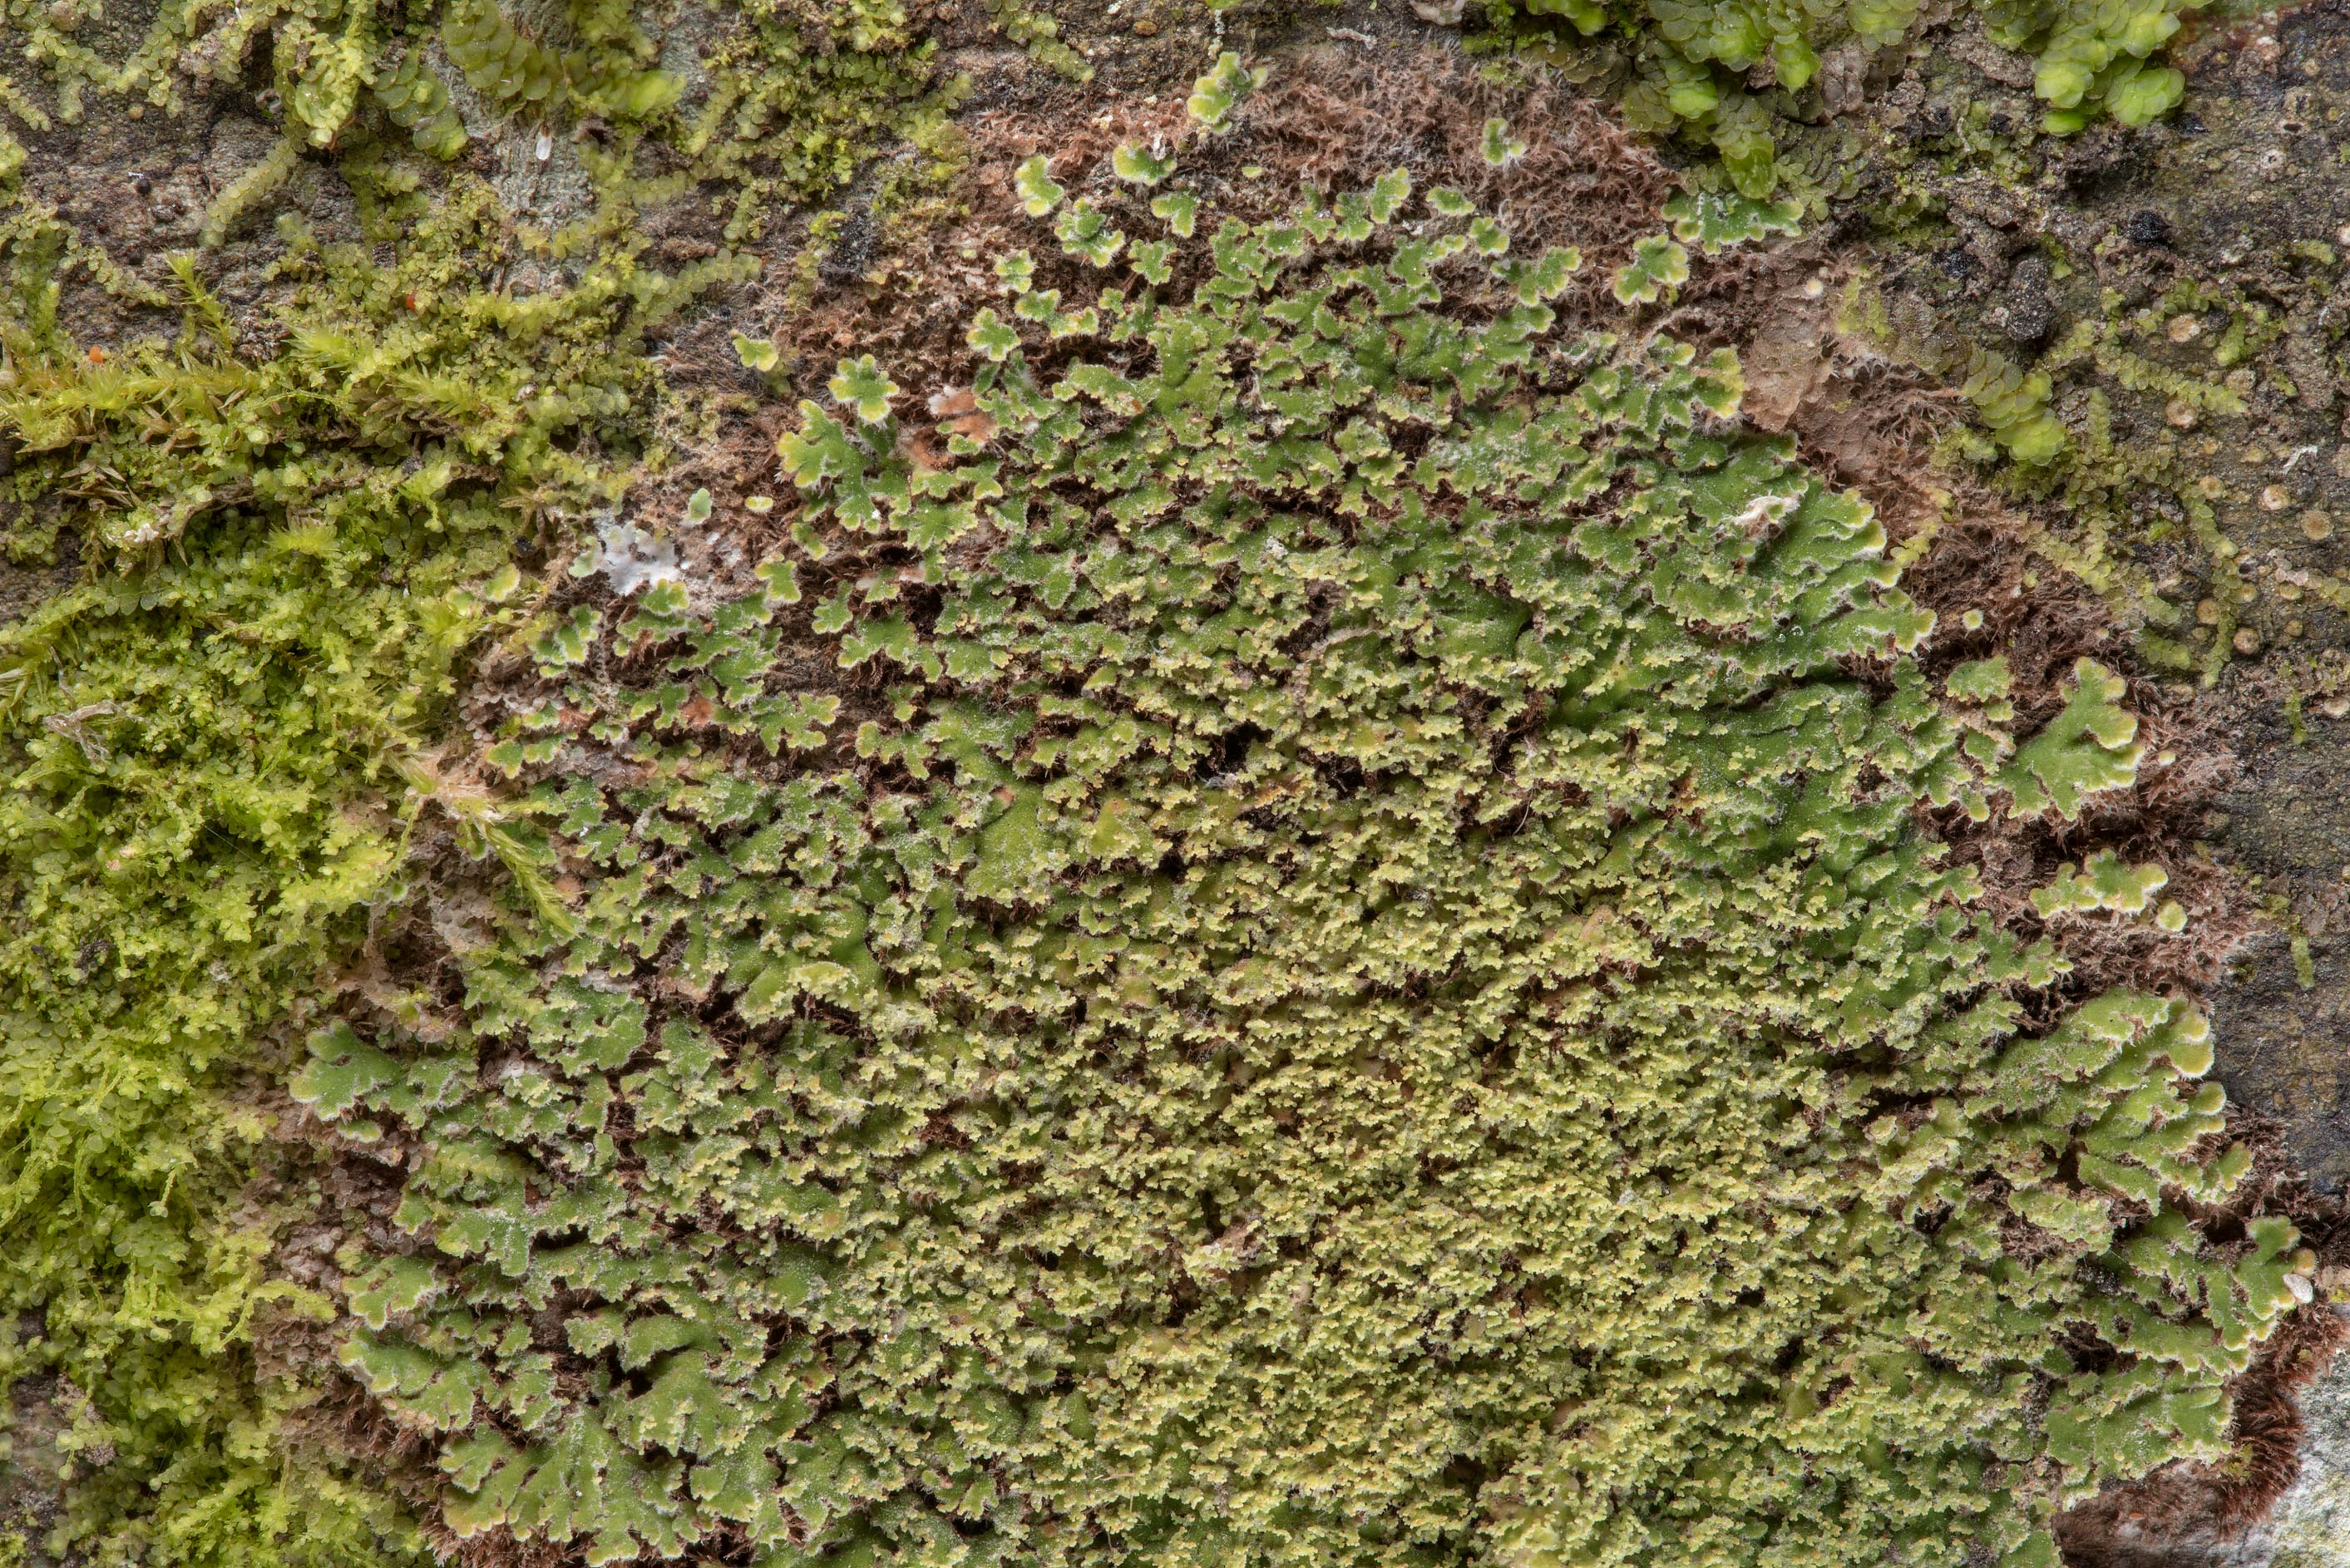 Lace-scale lichen Phyllopsora parvifolia on a...National Forest. Shepherd, Texas